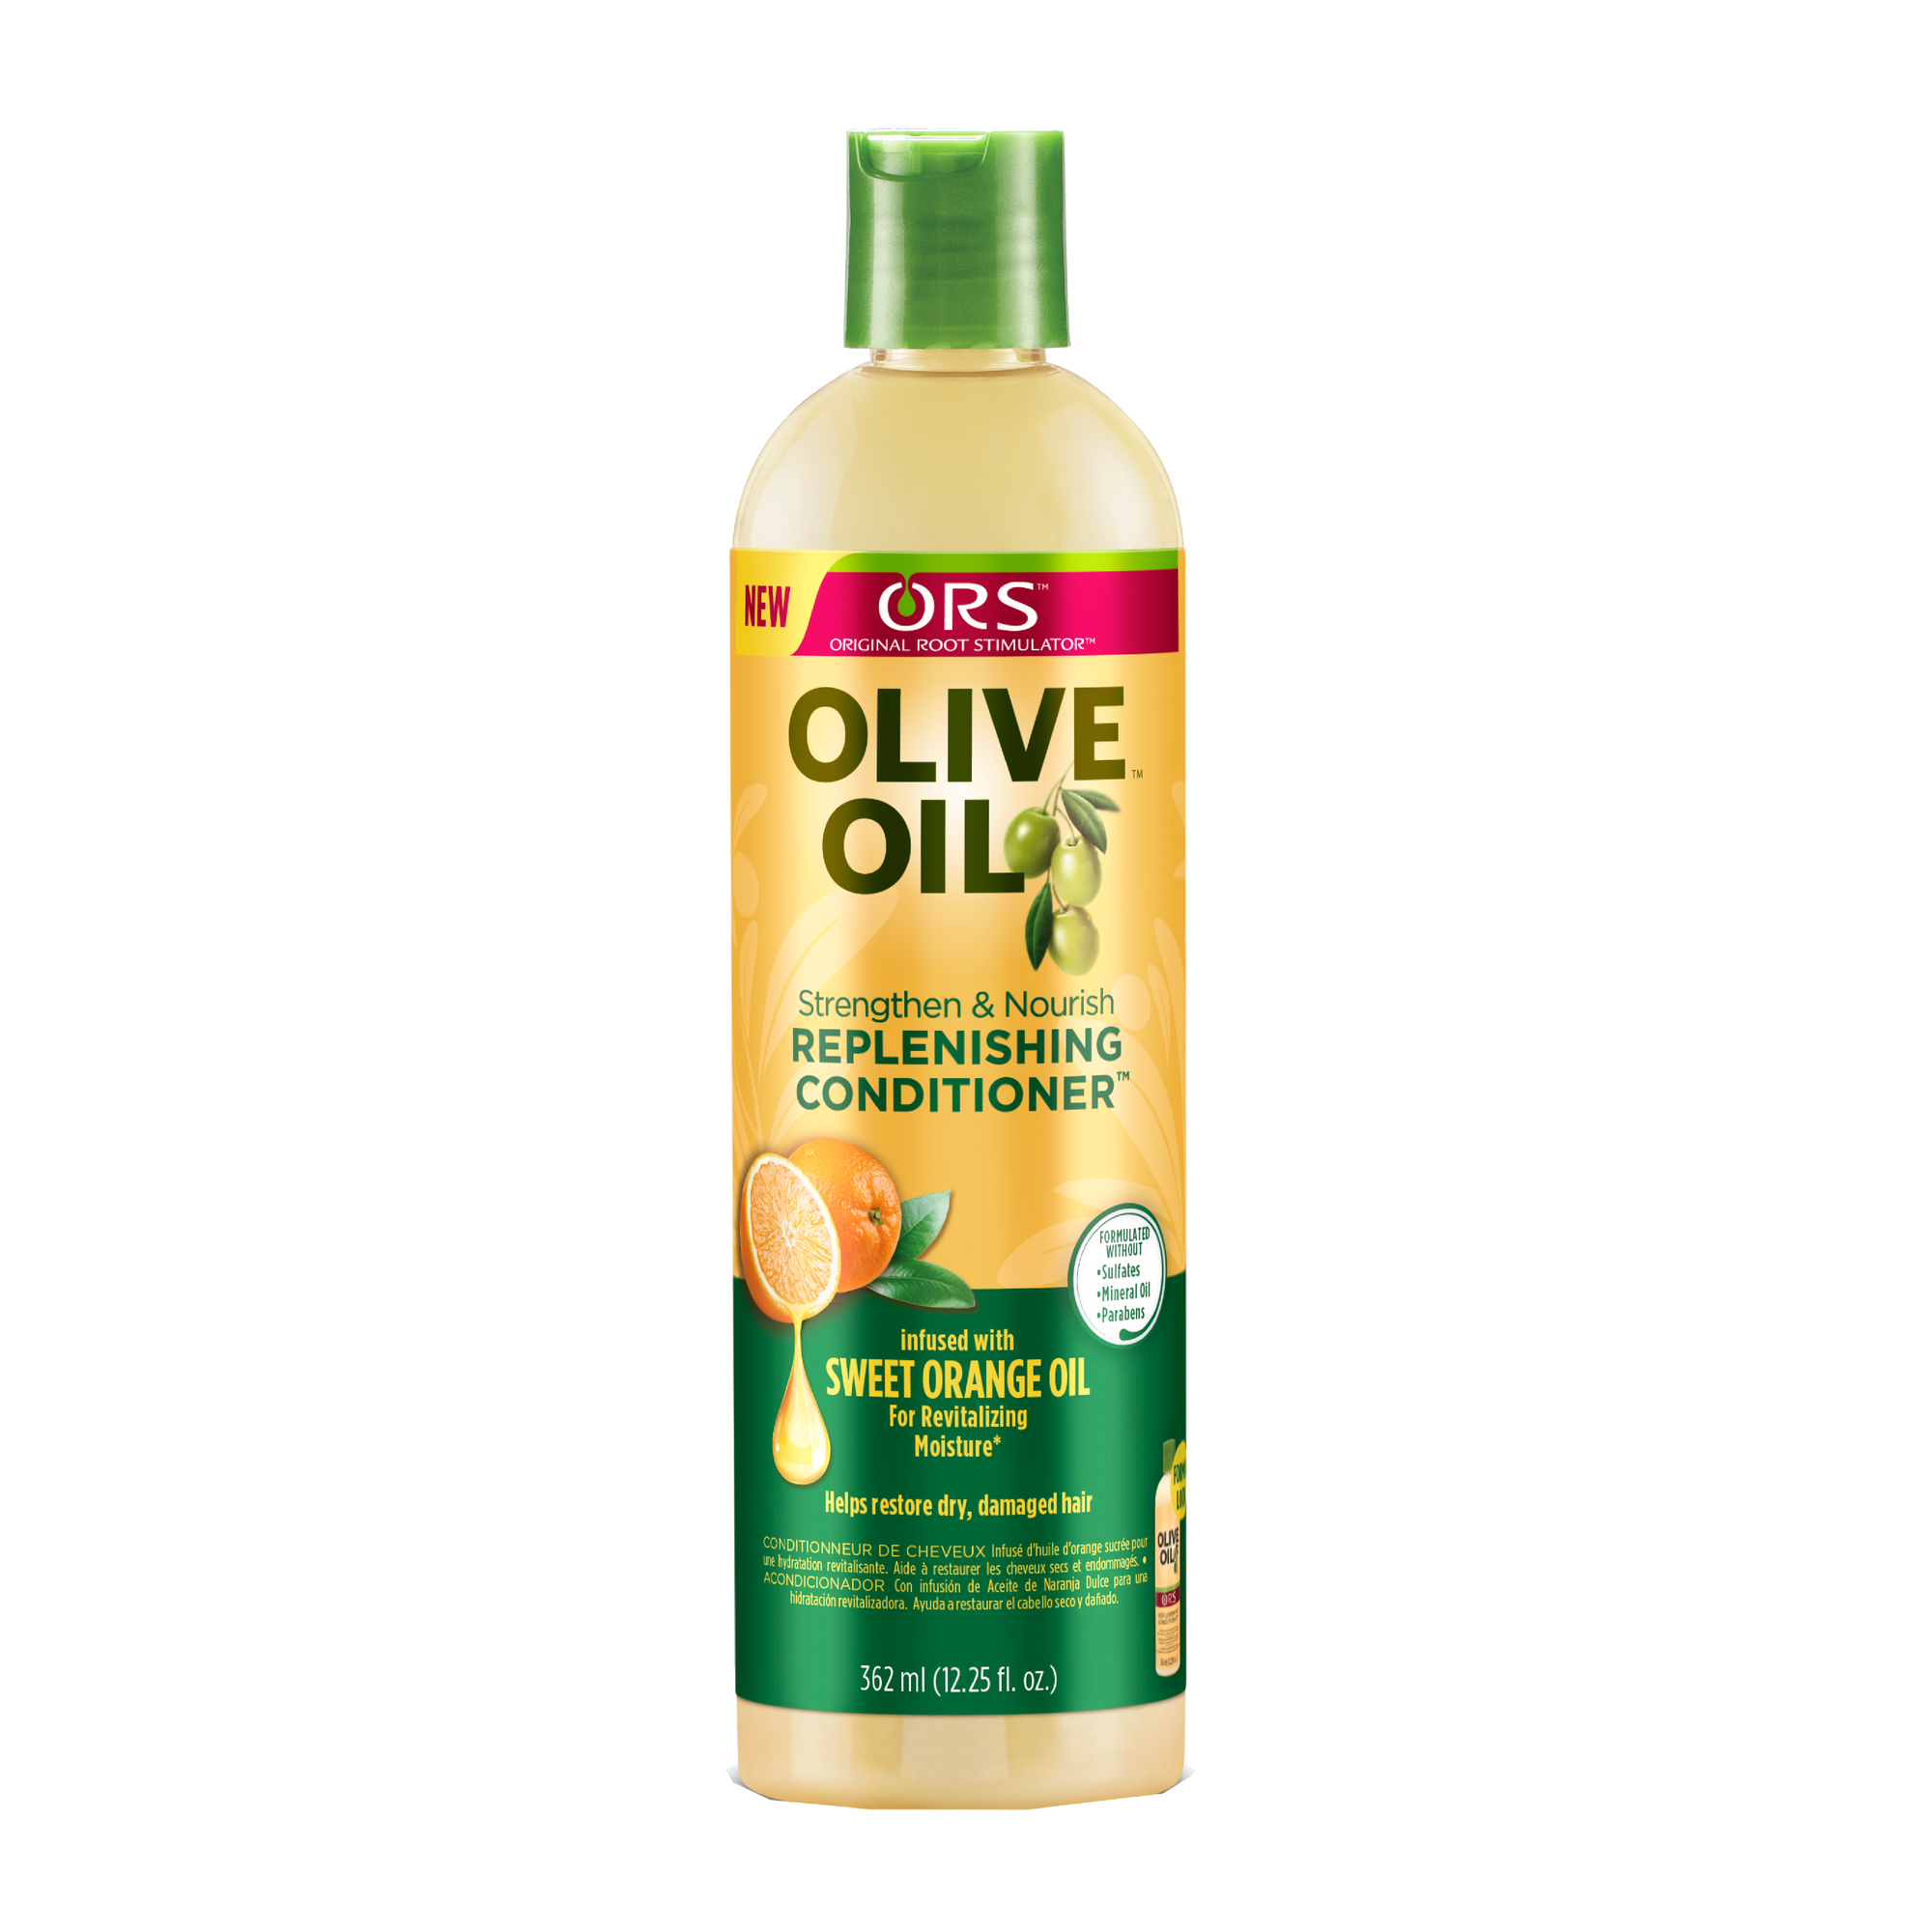 Olive Oil Replenishing Conditioner 370ml